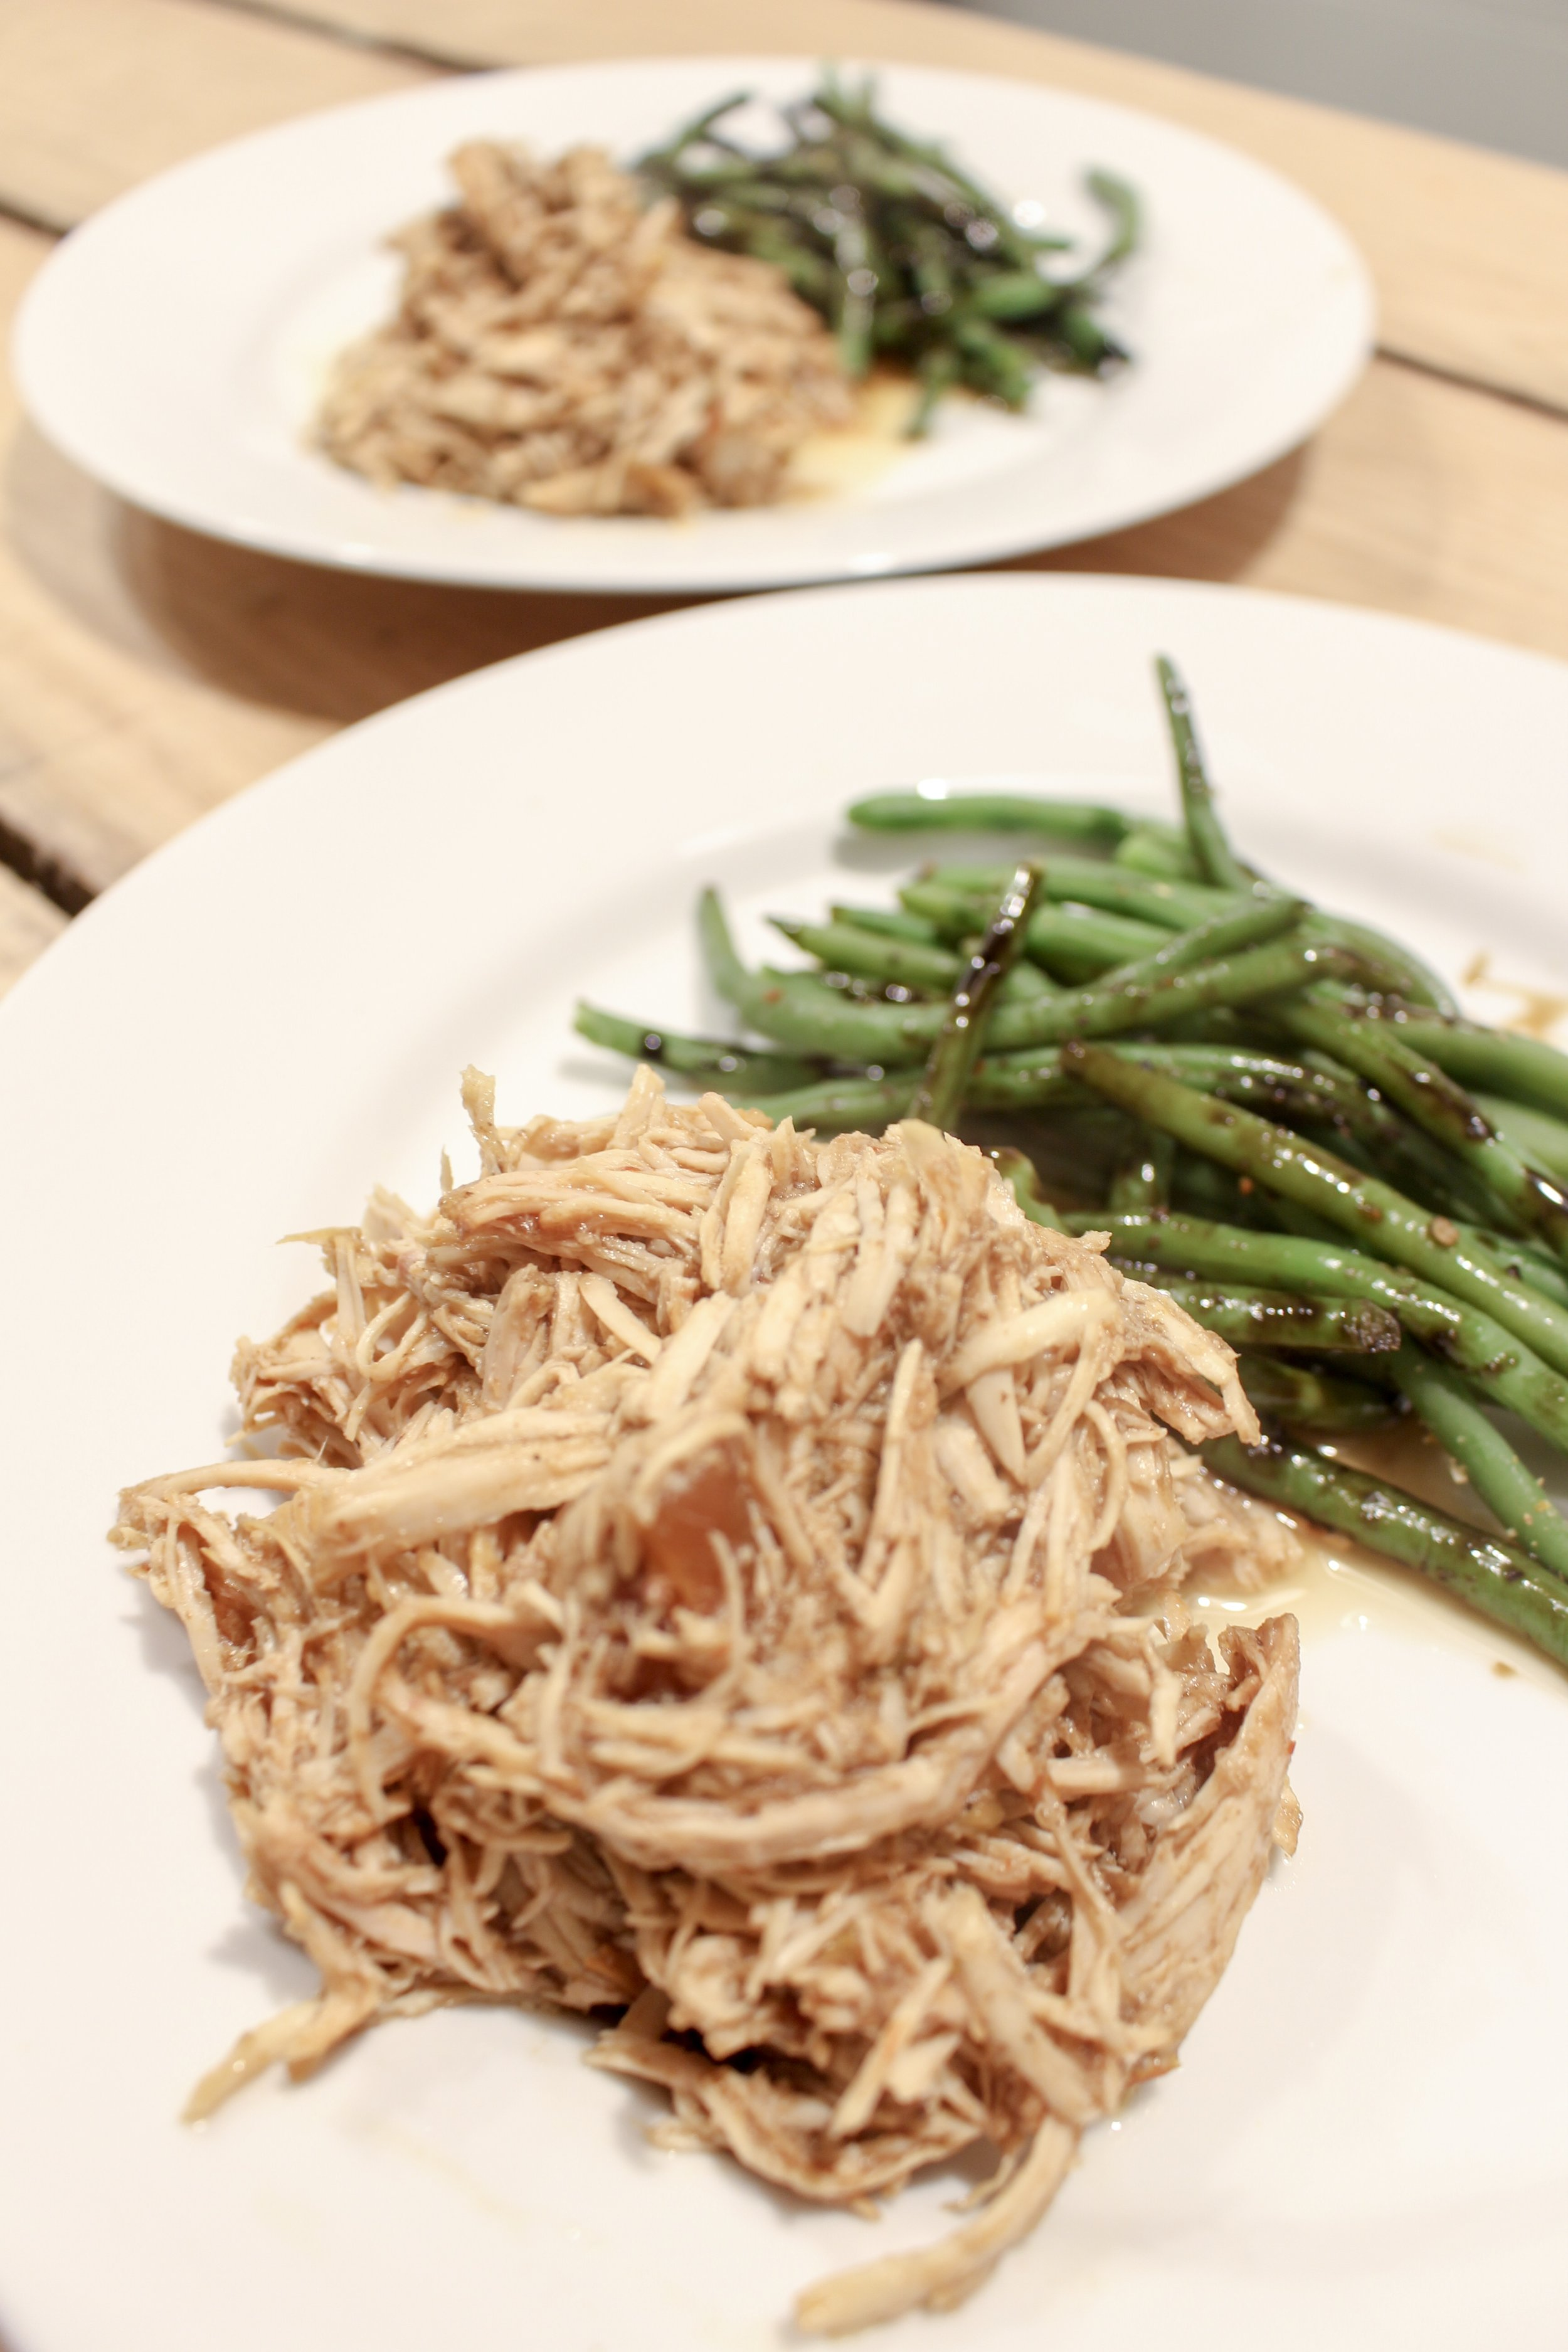 Pulled chicken and green beans